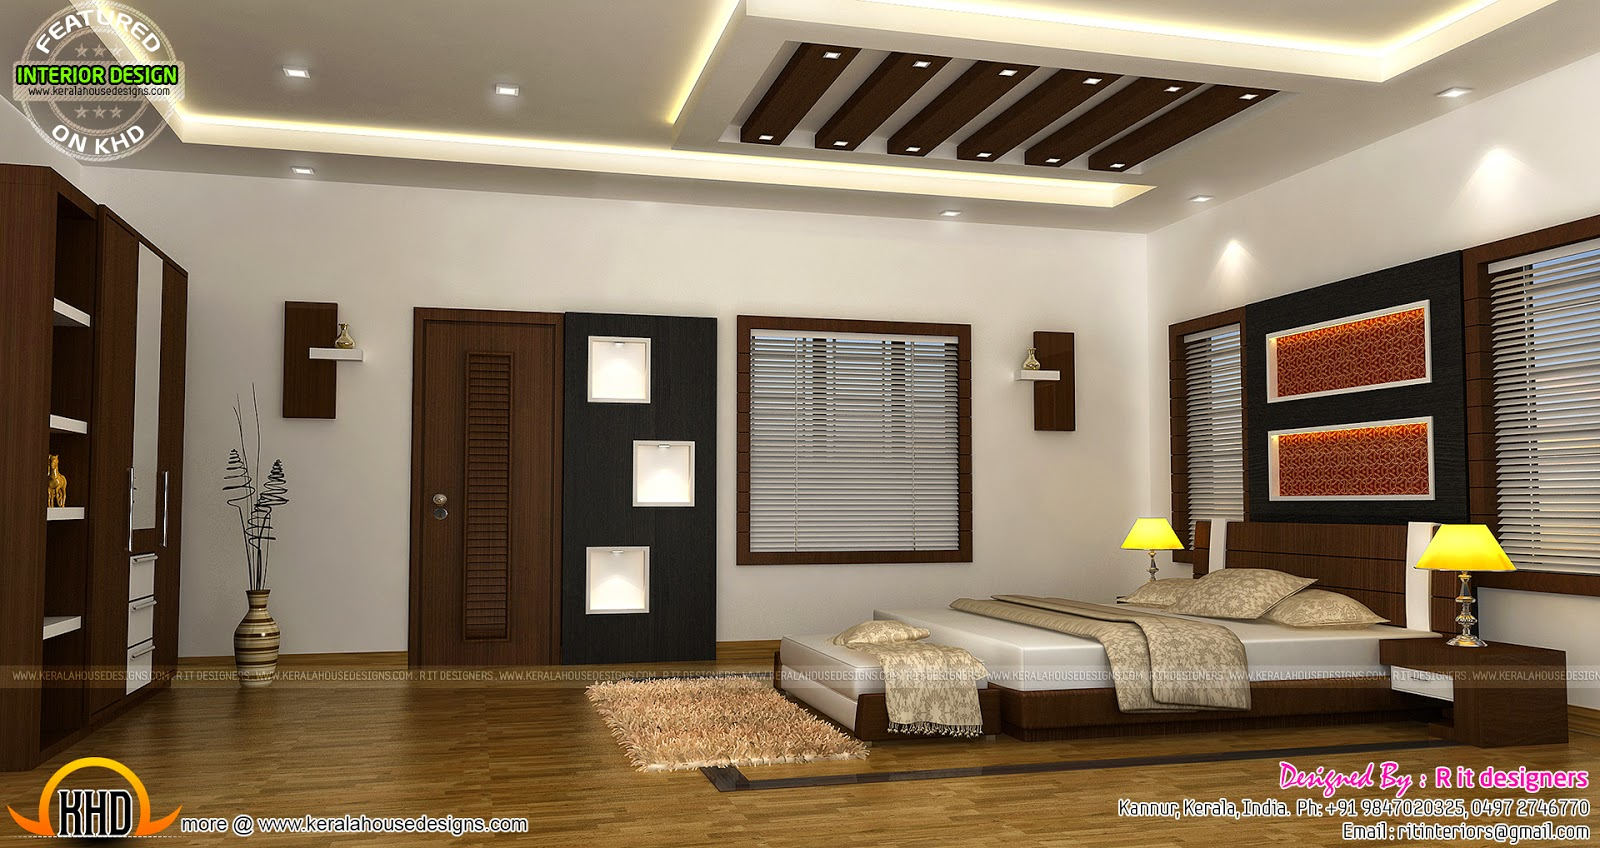 bedroom interior design with cost kerala home design and floor plans. Black Bedroom Furniture Sets. Home Design Ideas